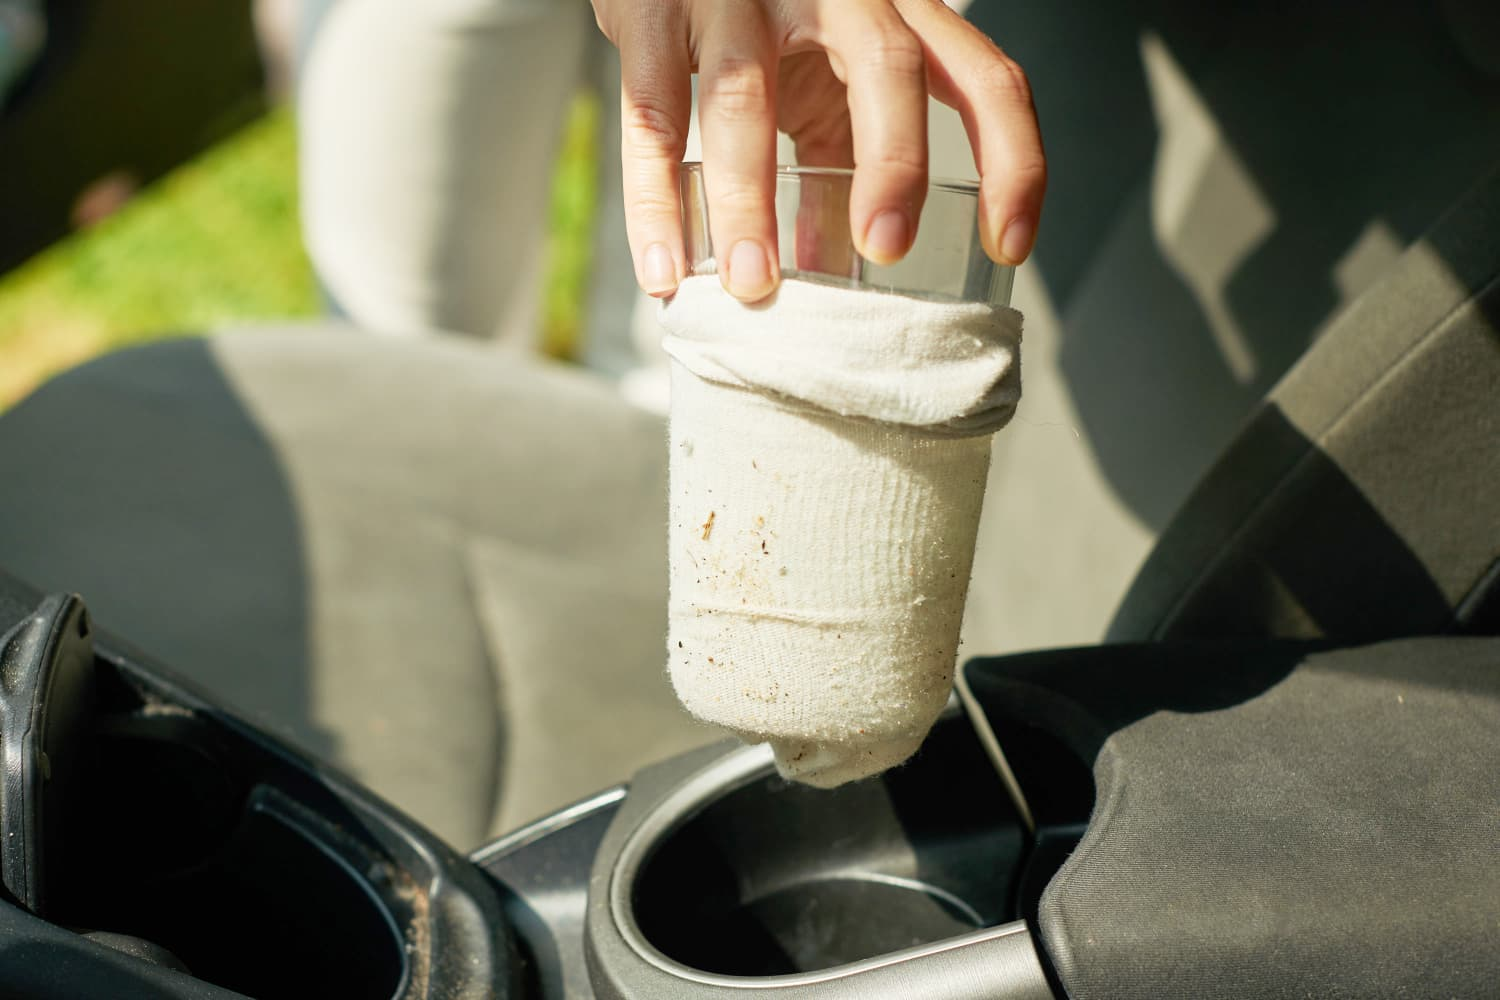 Car Cup Holder Cleaning Hack Kitchn